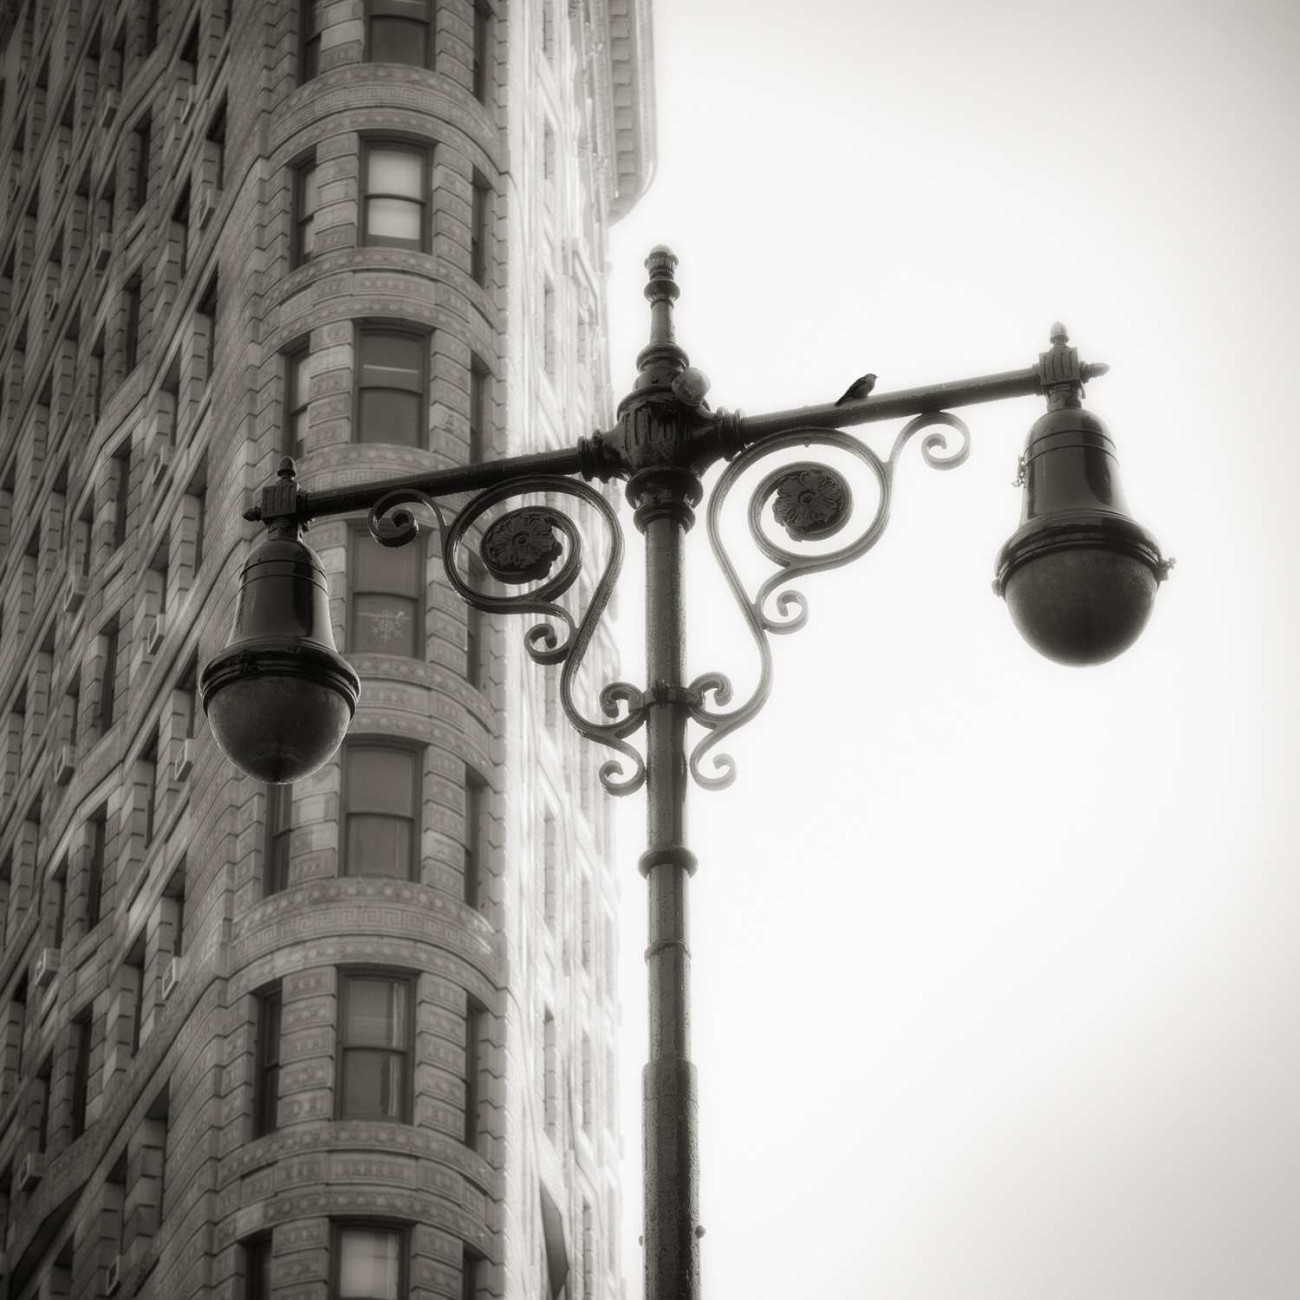 Flat Iron Building and street lamp, New York, 2011